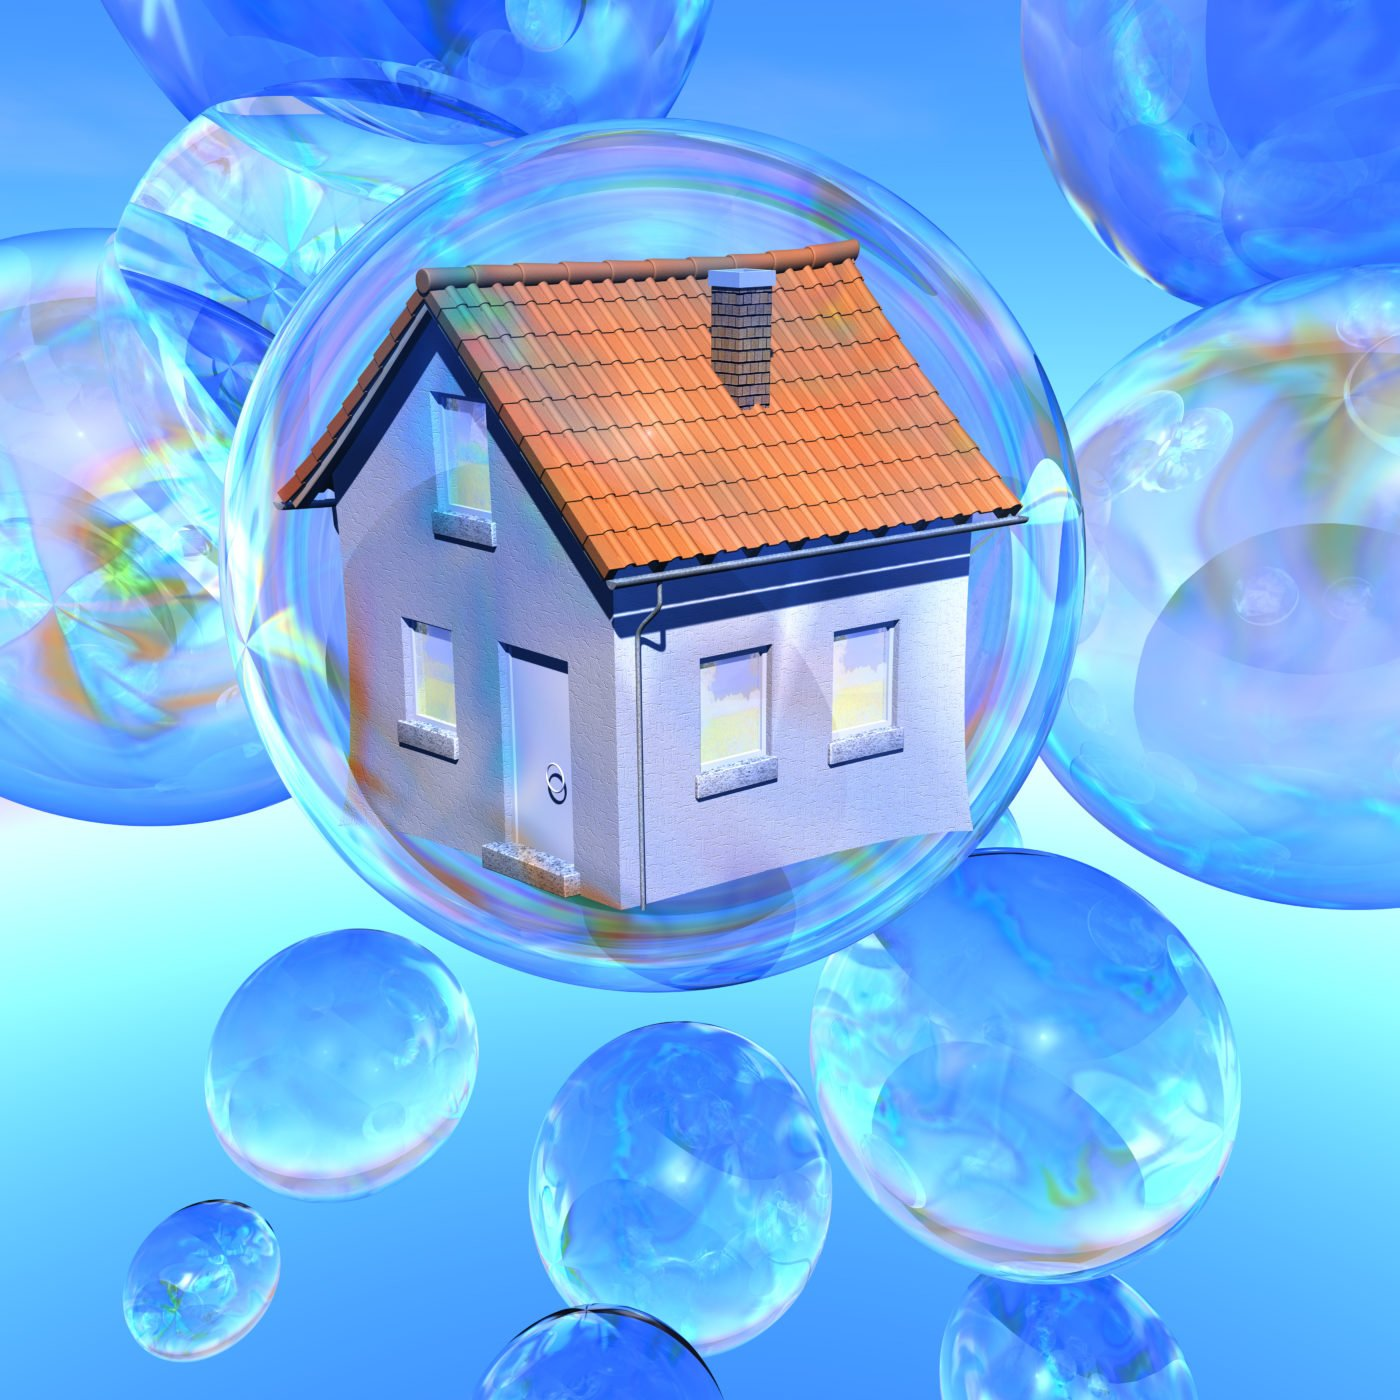 More than half of North American mortgage bankers worry housing bubble is forming